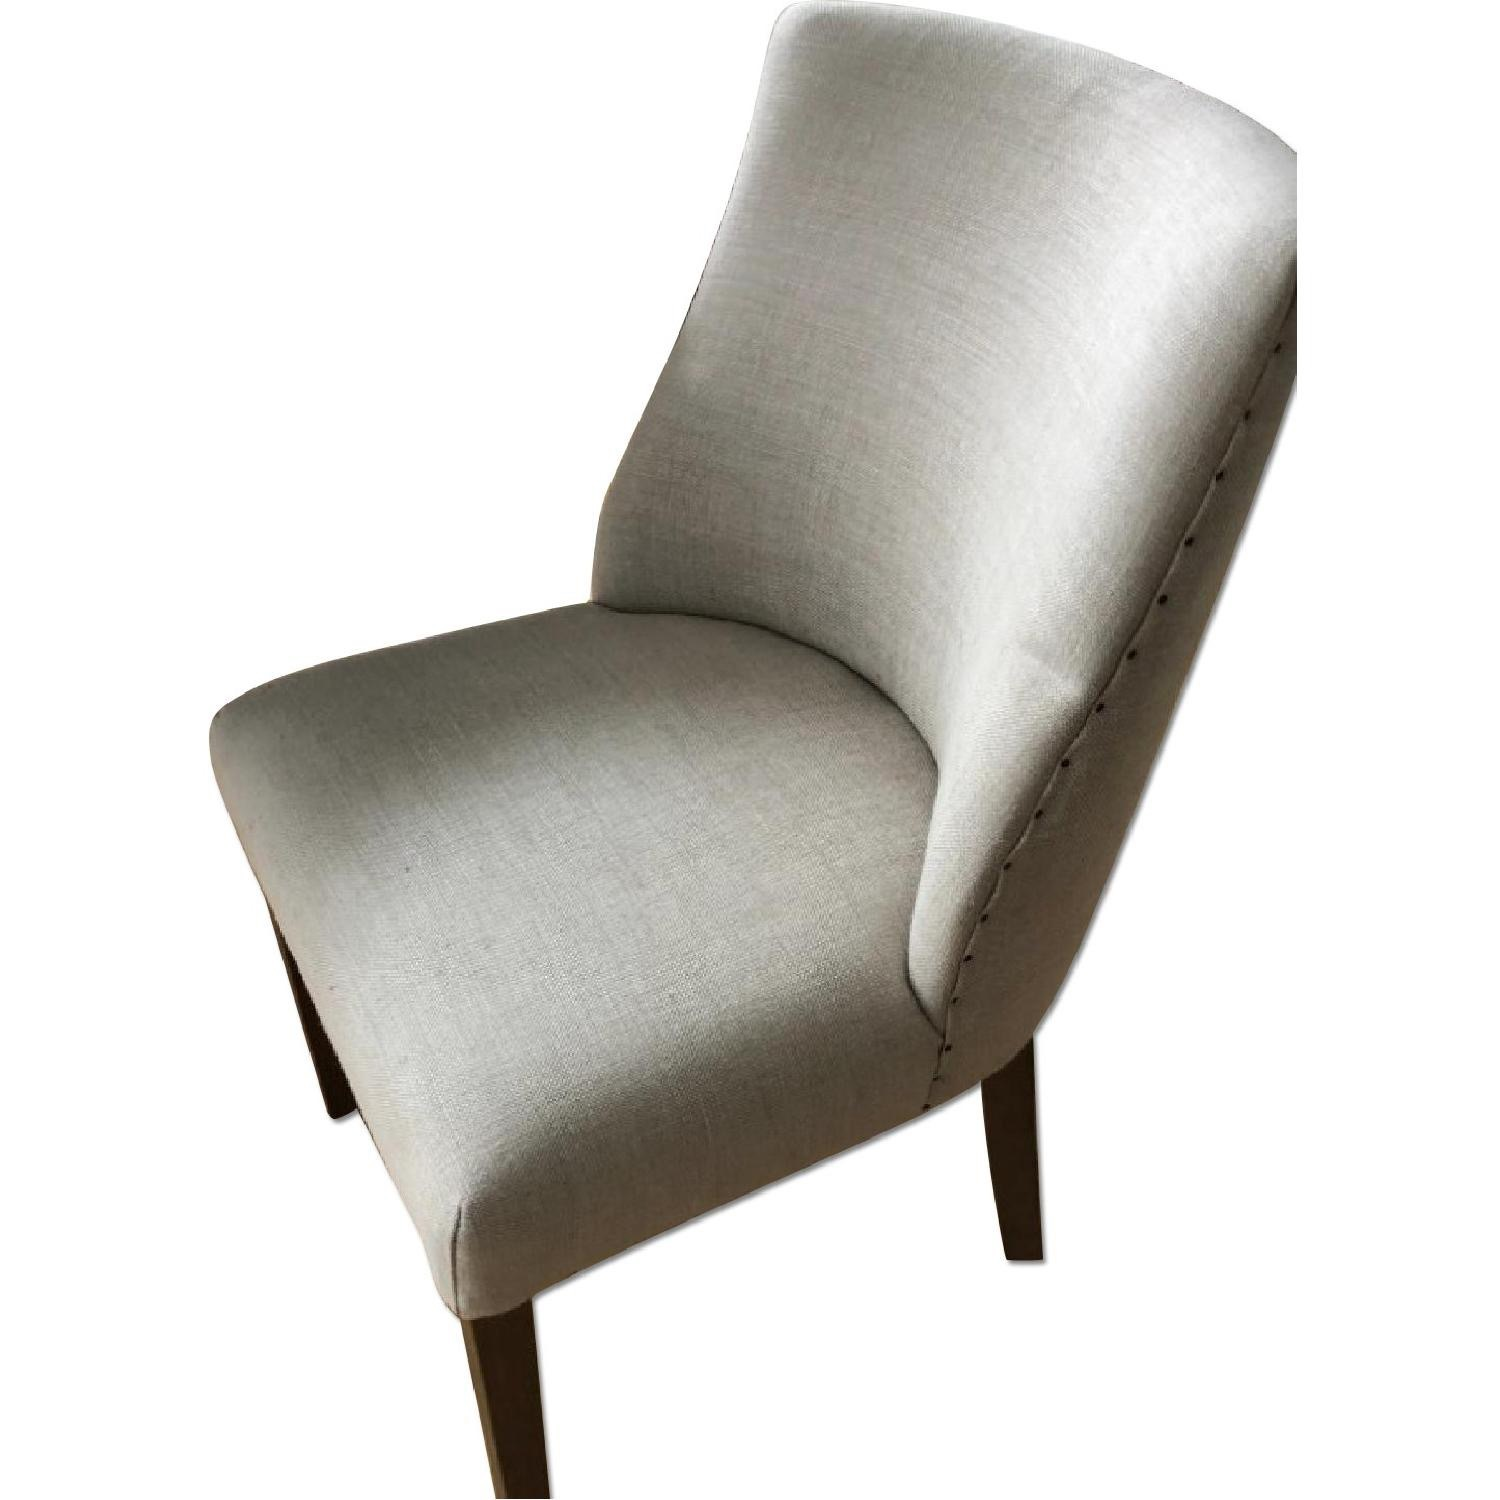 Restoration Hardware 1940S French Barrelback Fabric Chair - image-3